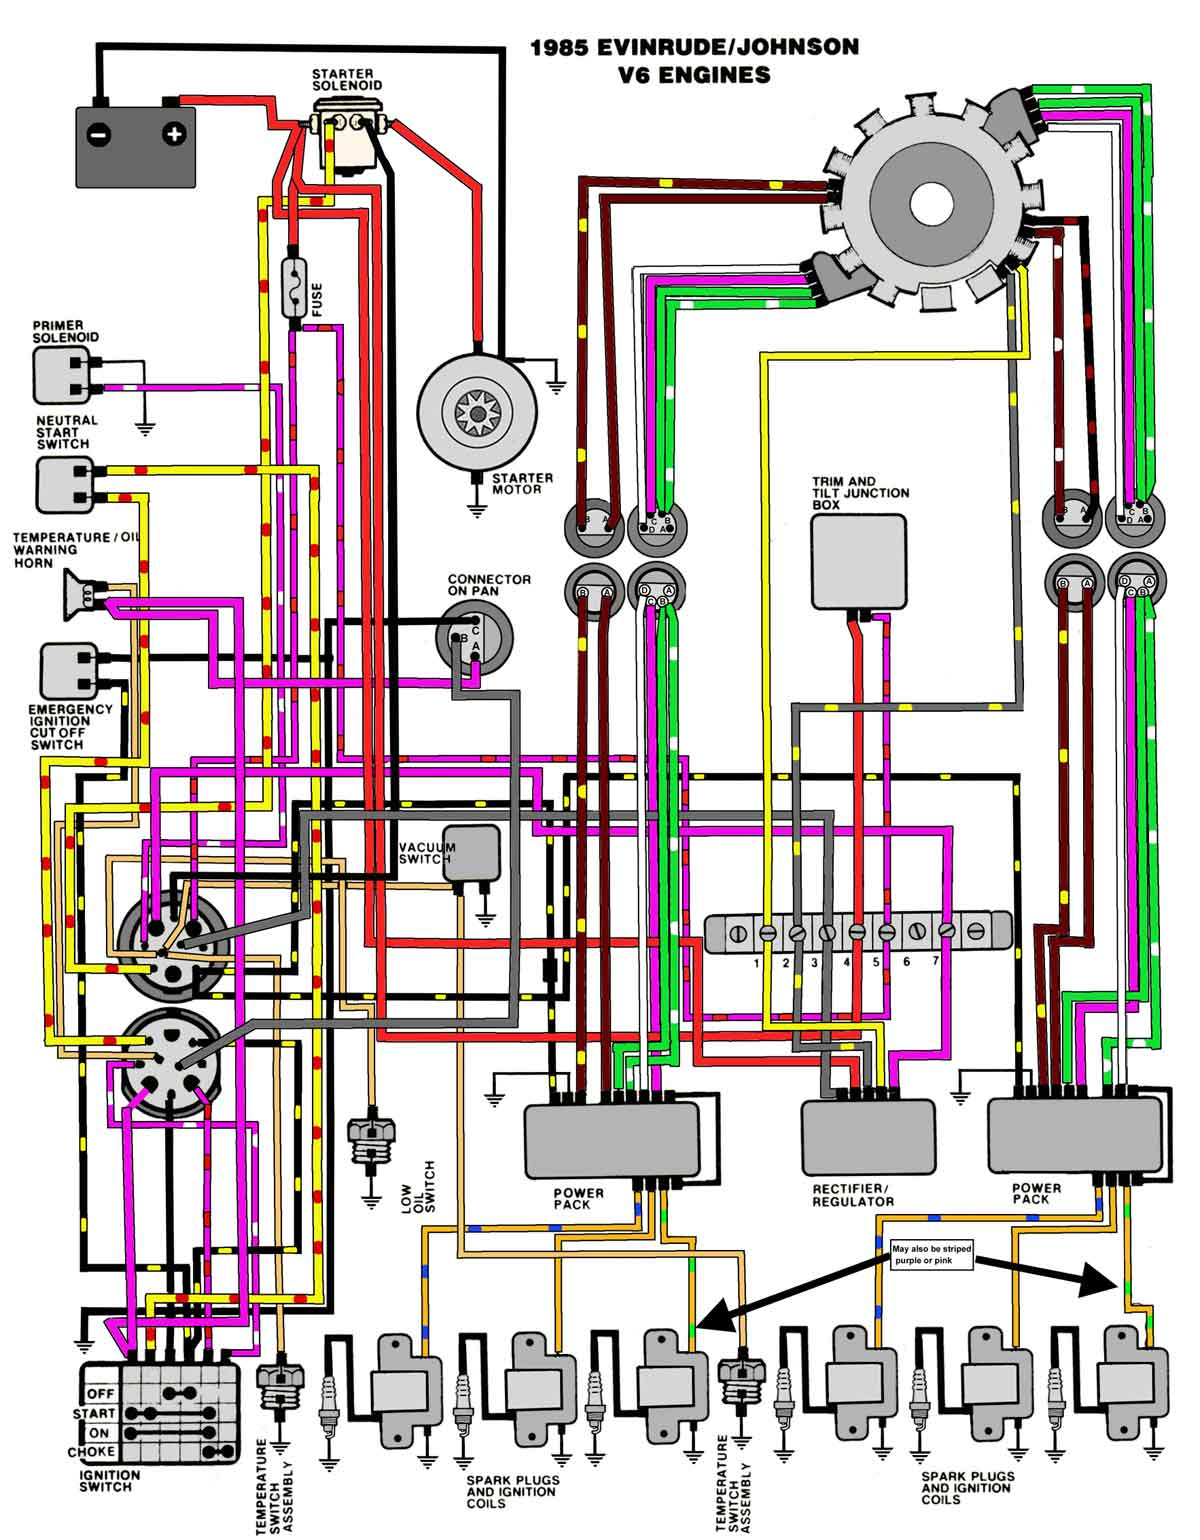 85_V6 mastertech marine evinrude johnson outboard wiring diagrams evinrude wiring diagram at bayanpartner.co